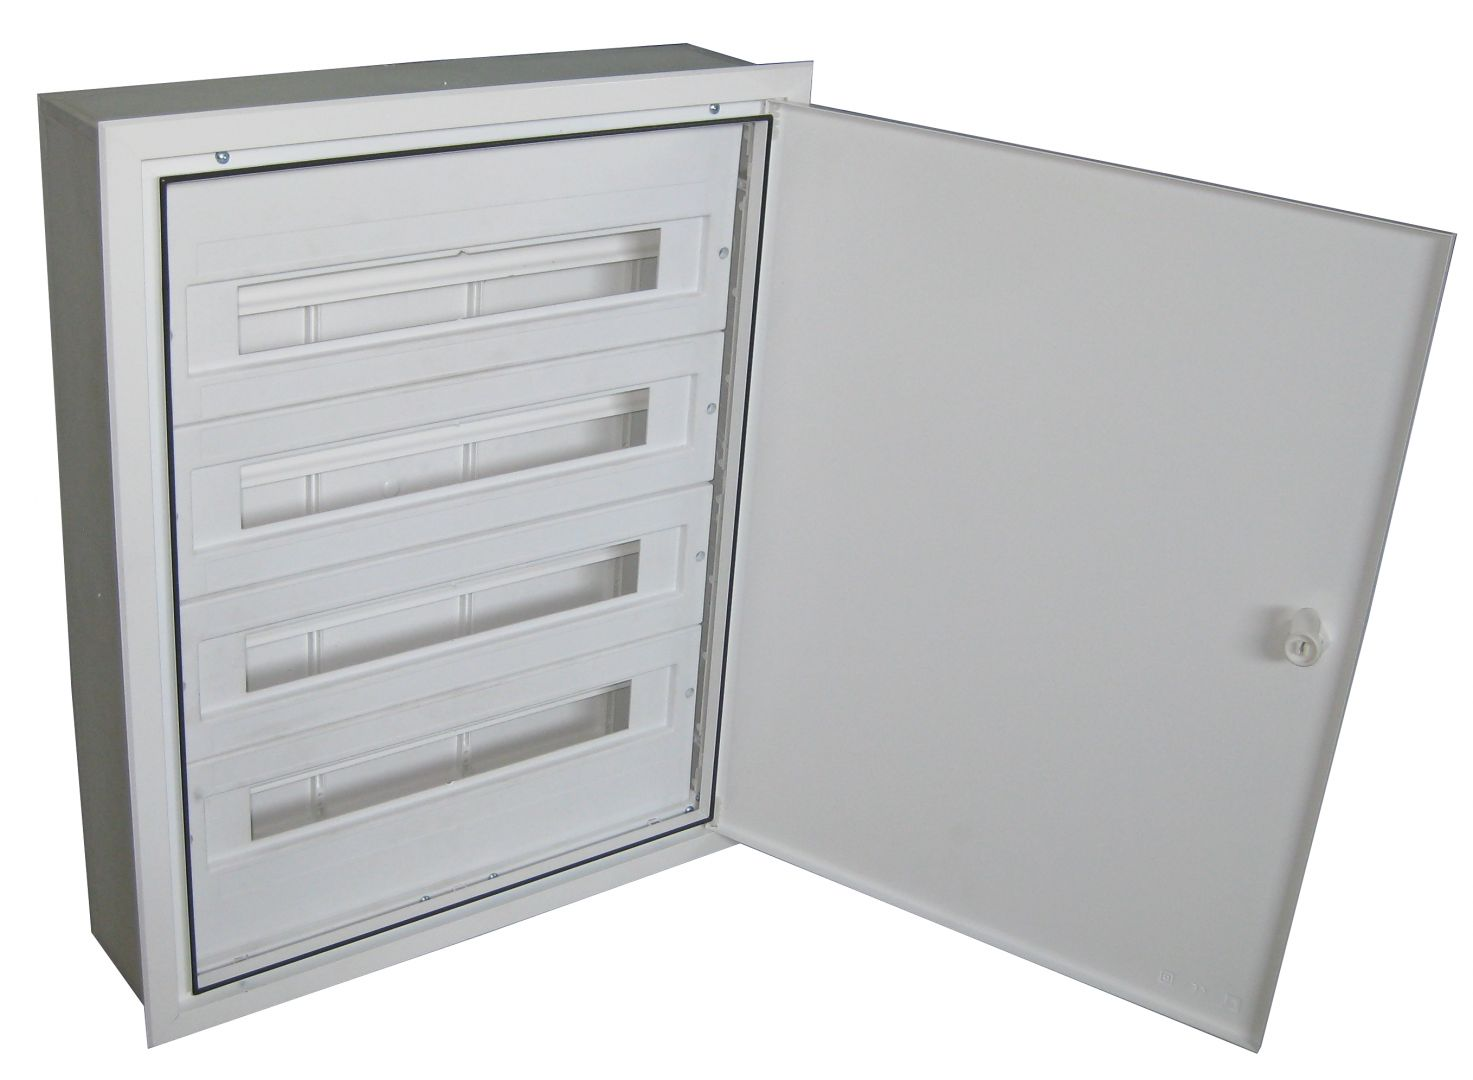 BUILT-IN DISTRIBUTION BOX 88 MODULES